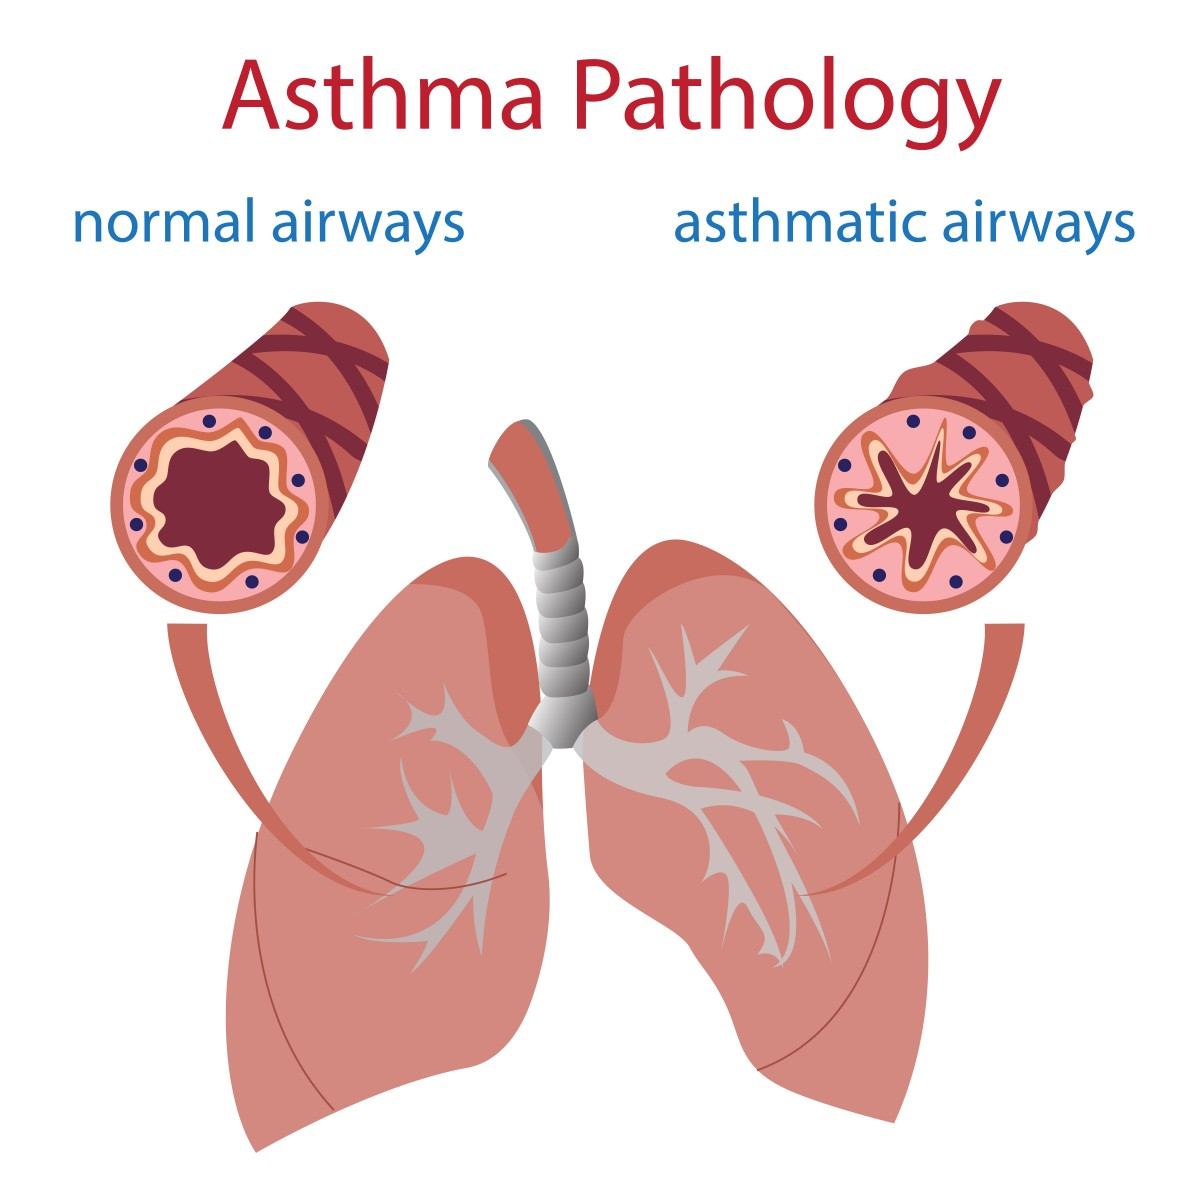 an analysis of the causes and treatments of asthma a chronic lung disease Patient understands that asthma is mostly a chronic disease and and its diagnosis, prognosis, and treatment  arterial blood gas analysis should be considered in.